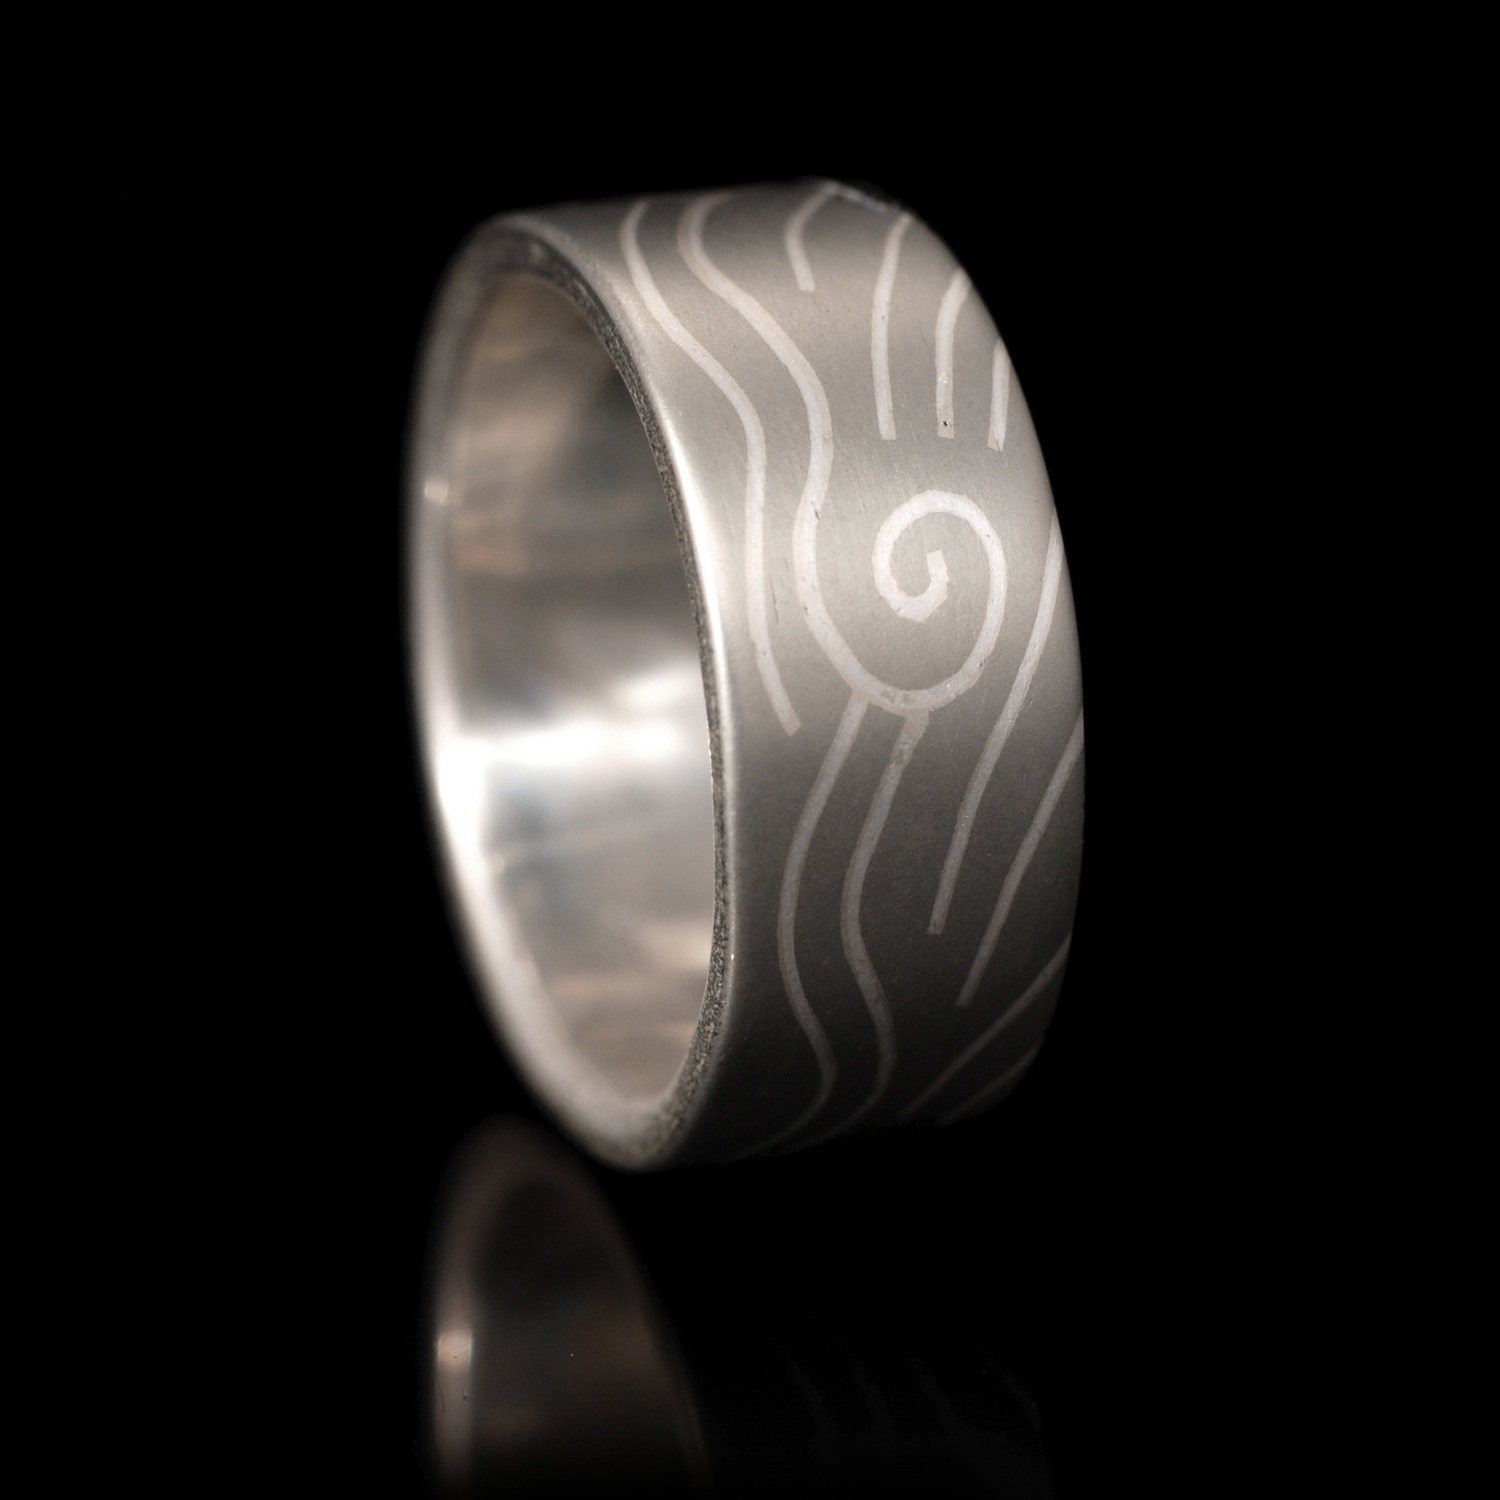 The finished ring based on the above sketches